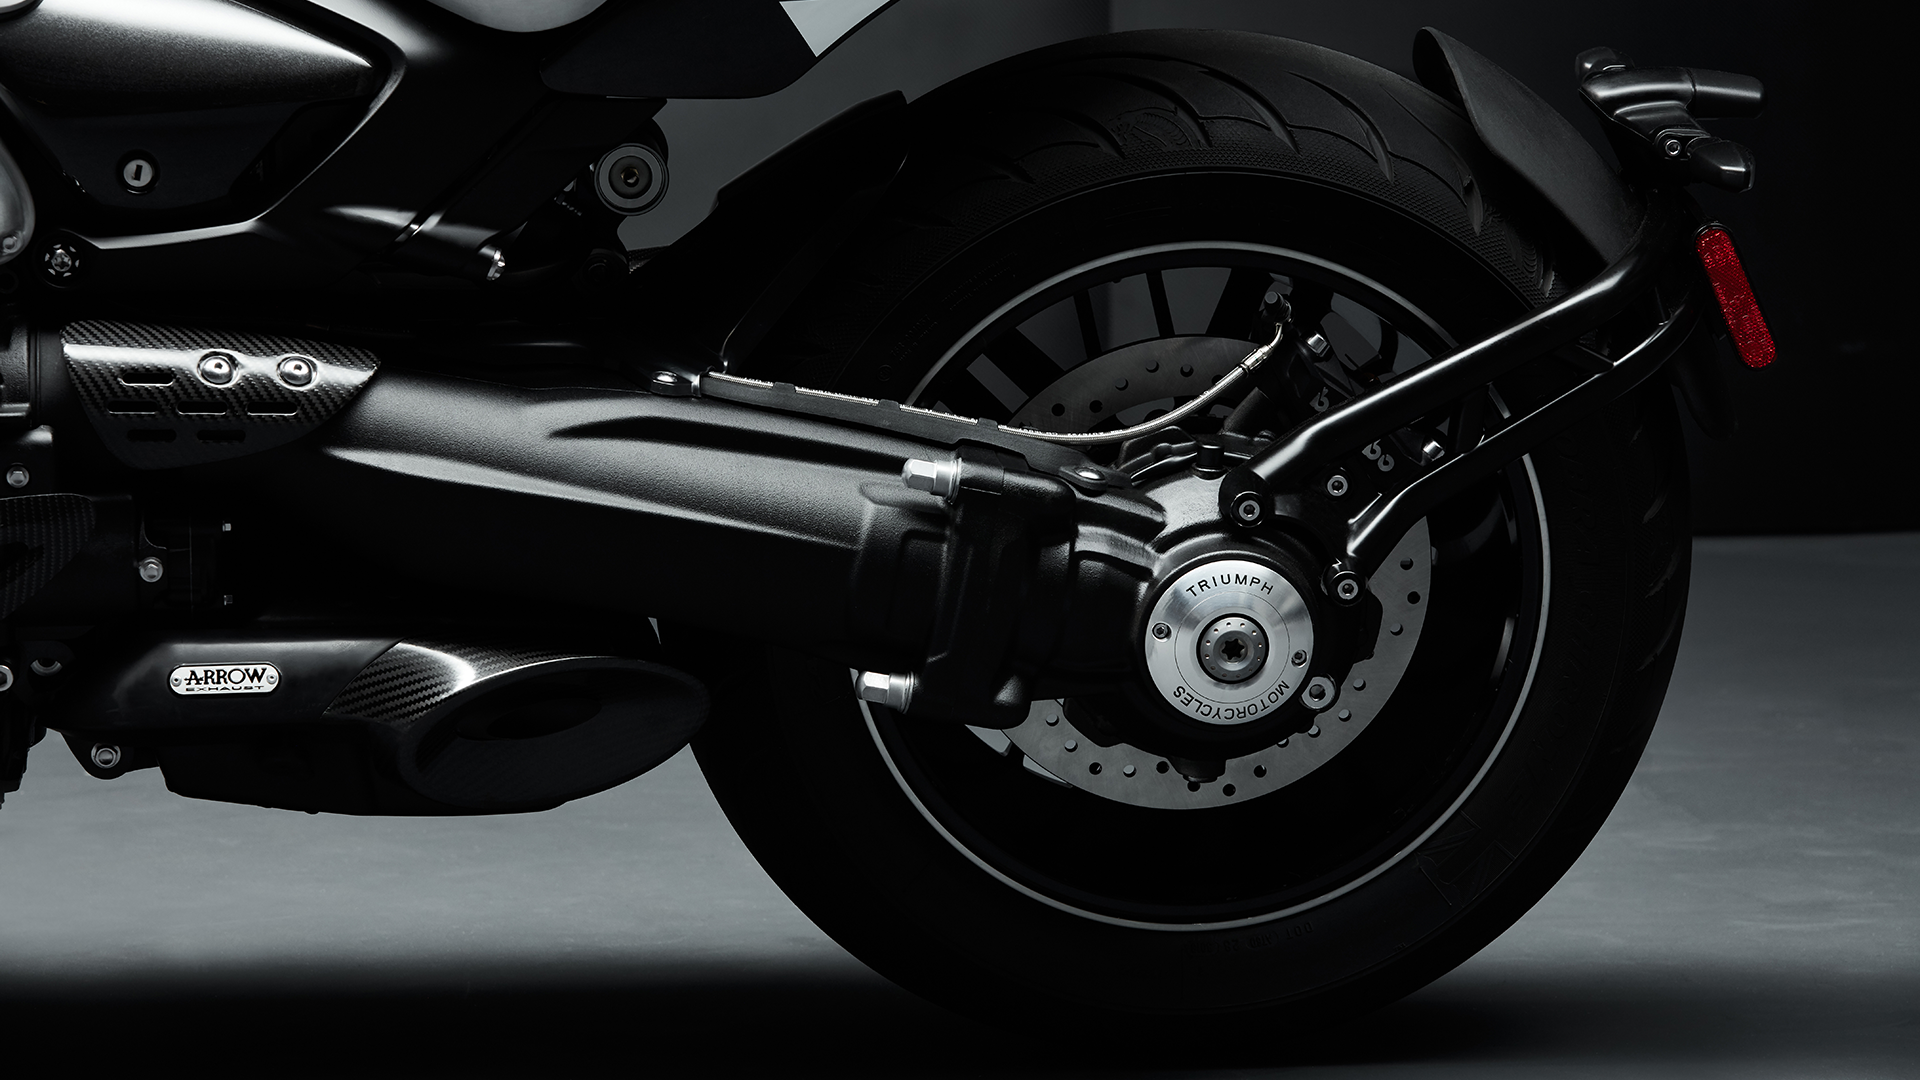 Triumph Rocket 3 TFC swing arm with premium detailing